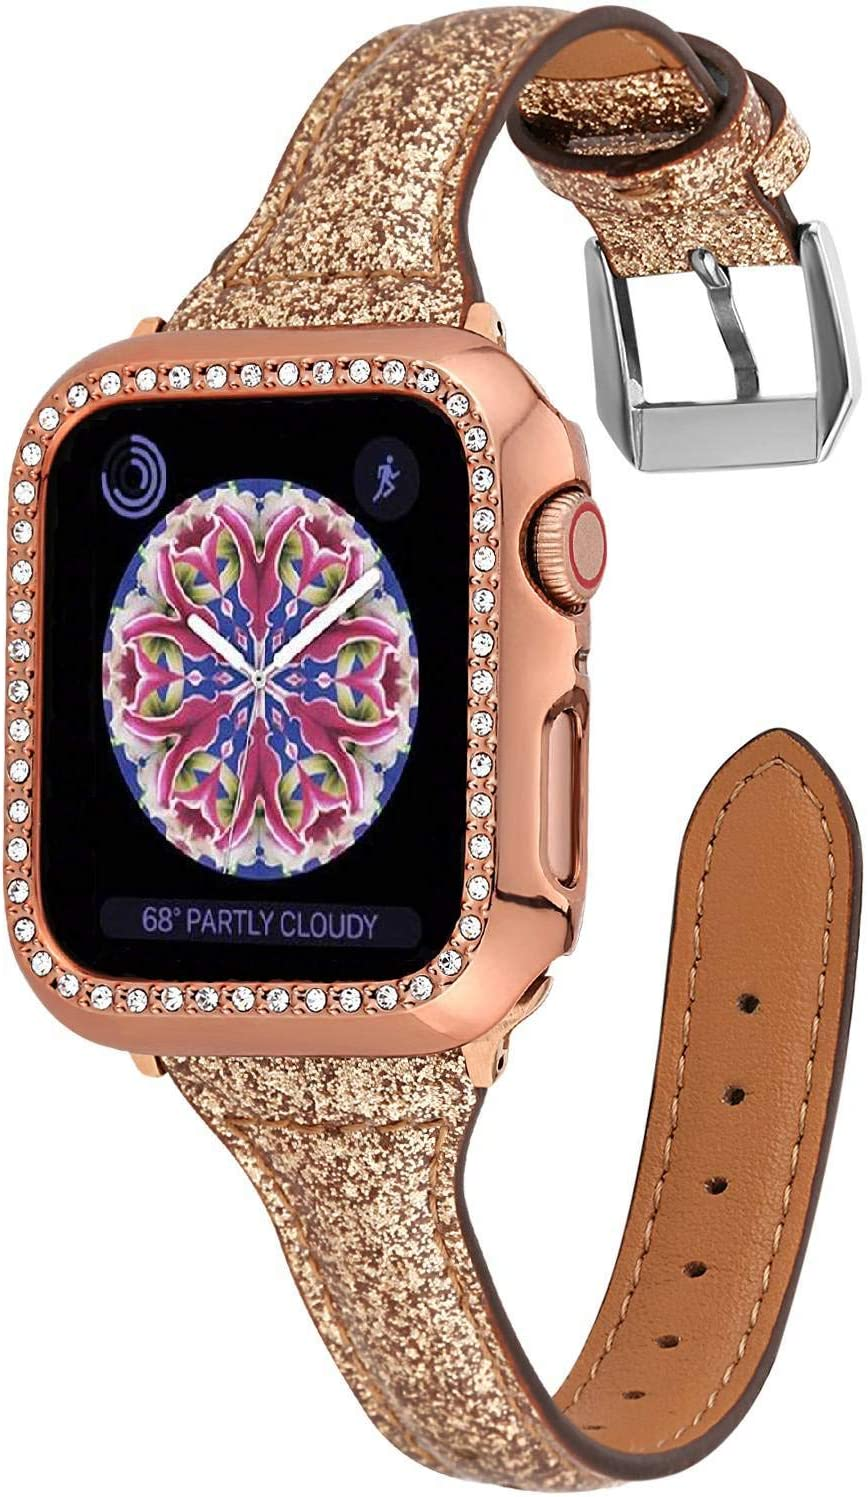 Greaciary Bling Thin Band Compatible with Apple Watch 38mm 40mm 42mm 44mm,Shiny Glitter Soft Slim Narrow Replacement Strap Compatible for iWatch Series 5/4/3/2/1,Sport Edition Women,Rose Gold